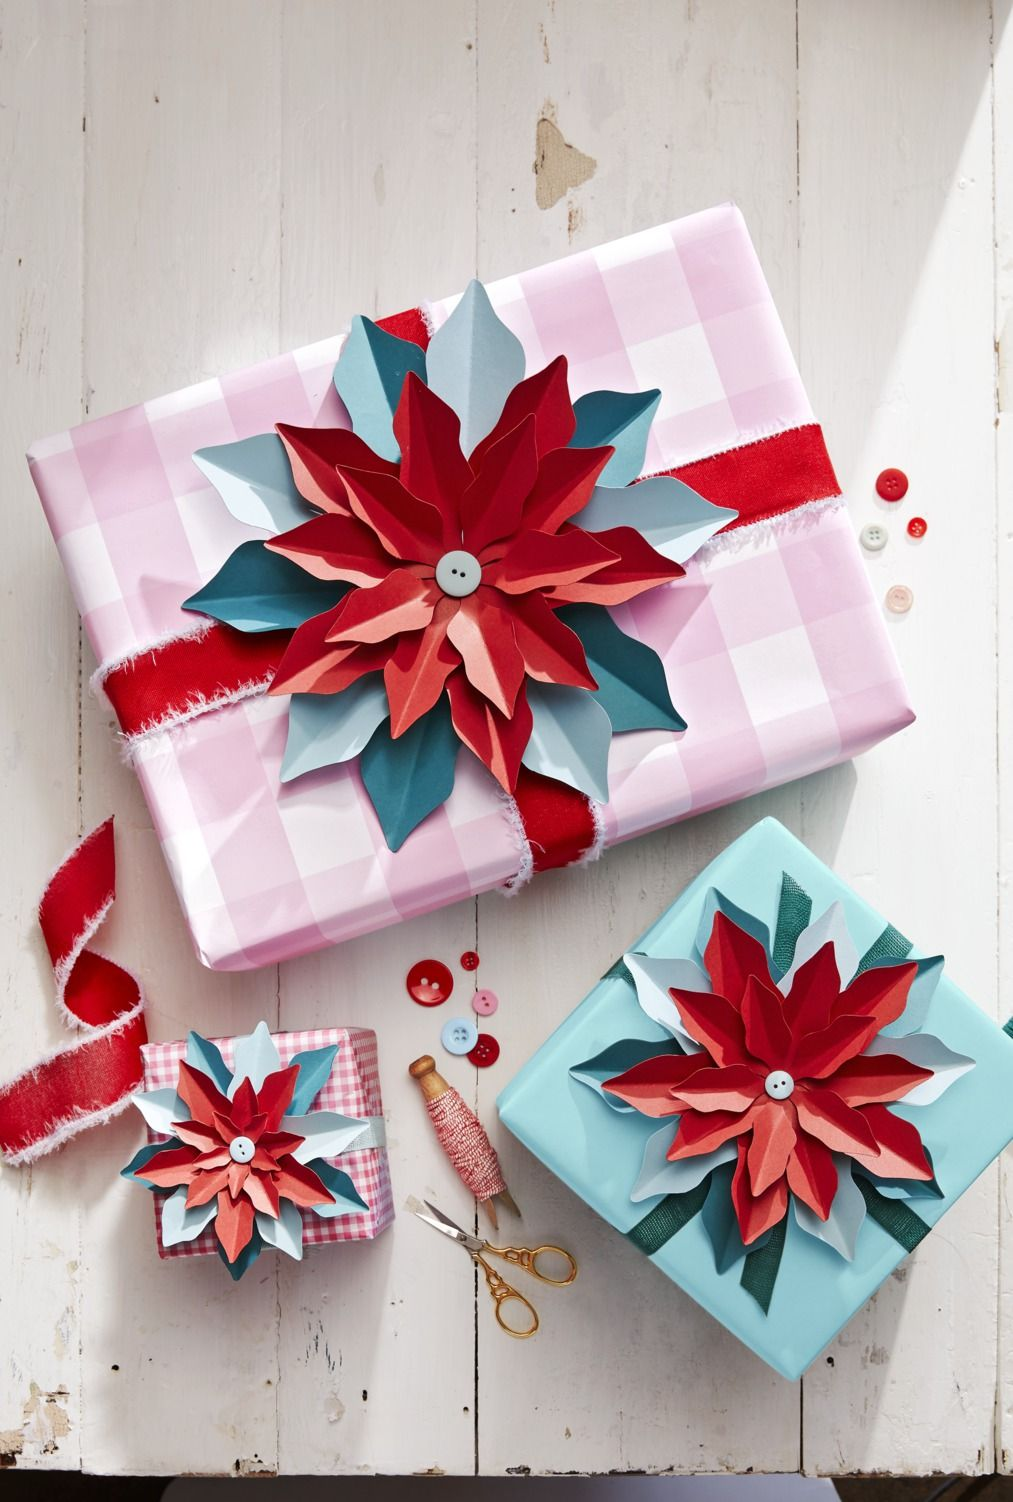 78 Diy Christmas Crafts Best Diy Ideas For Holiday Craft Projects